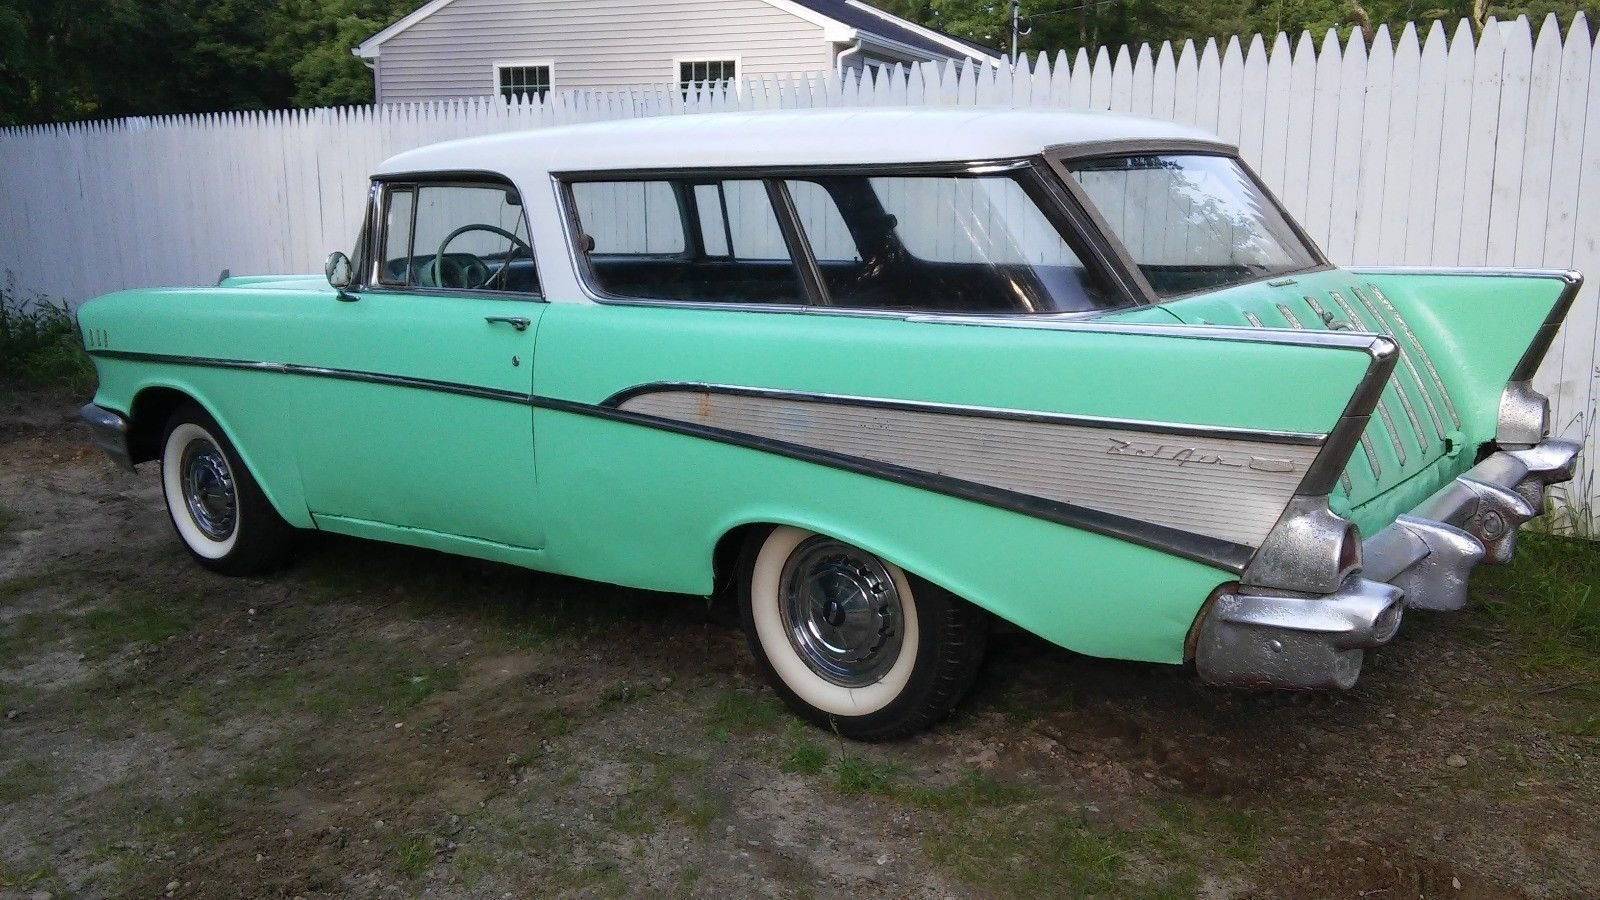 1957 Chevrolet Nomad For Sale 94842 Mcg Chevy Station Wagon